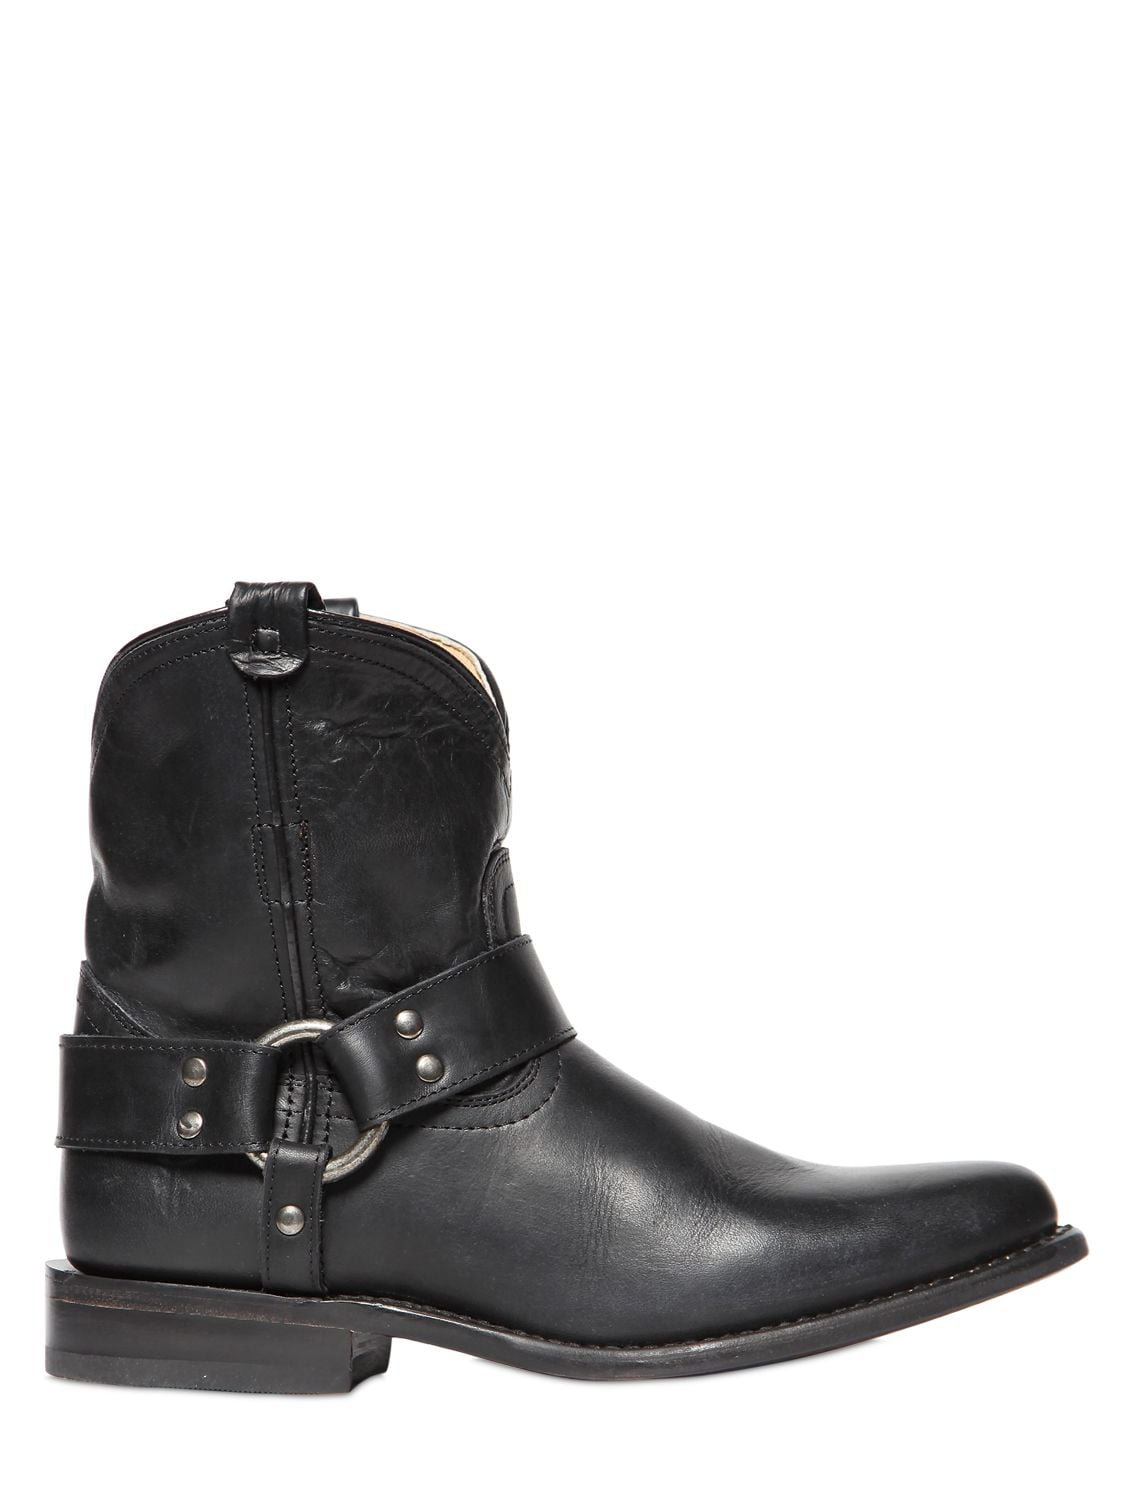 Frye leather cowboy boots ($370)